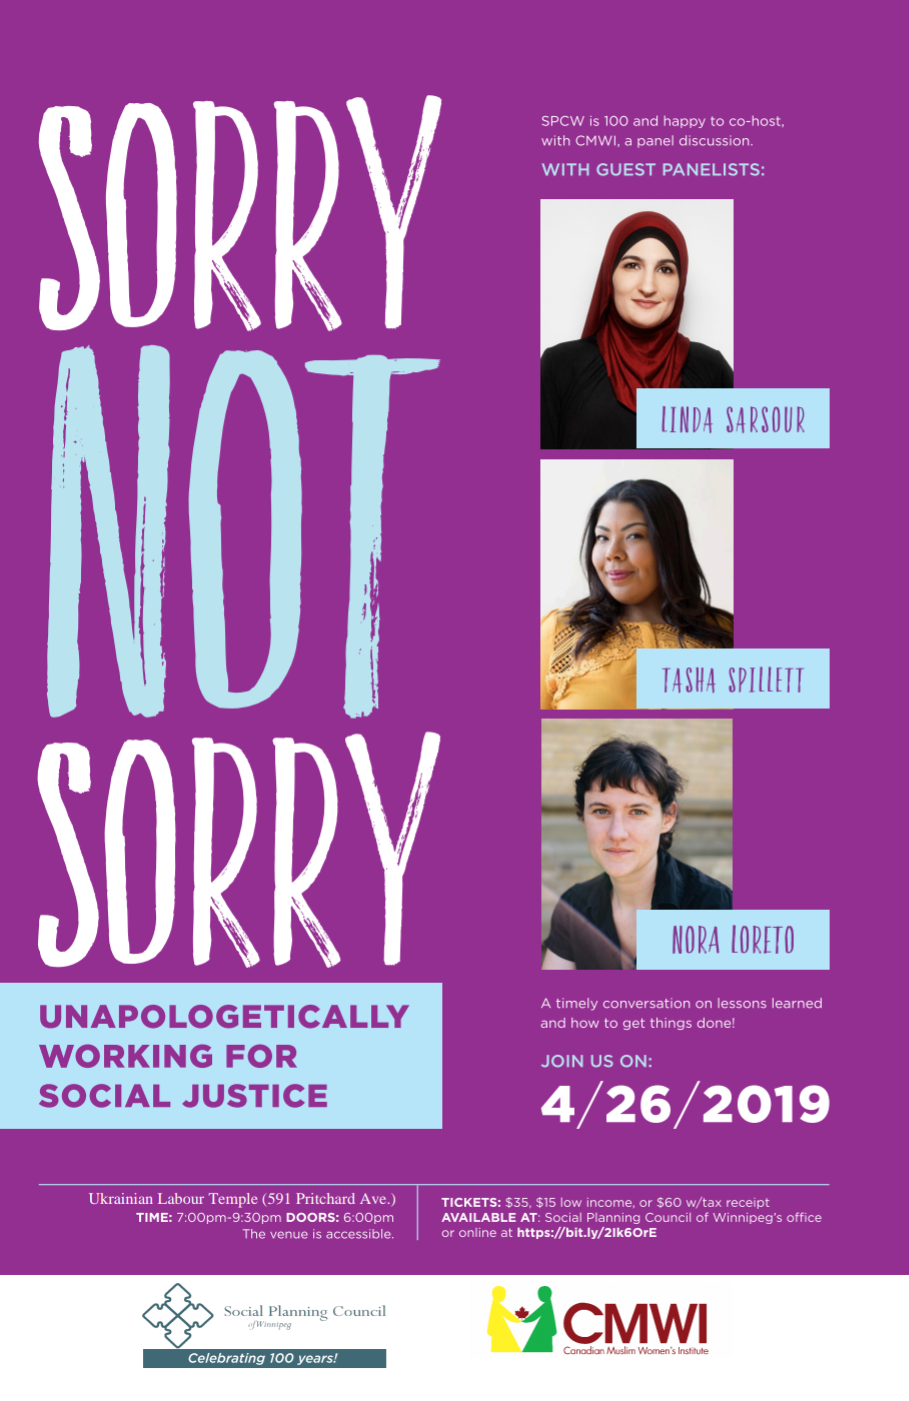 Sorry Not Sorry event poster